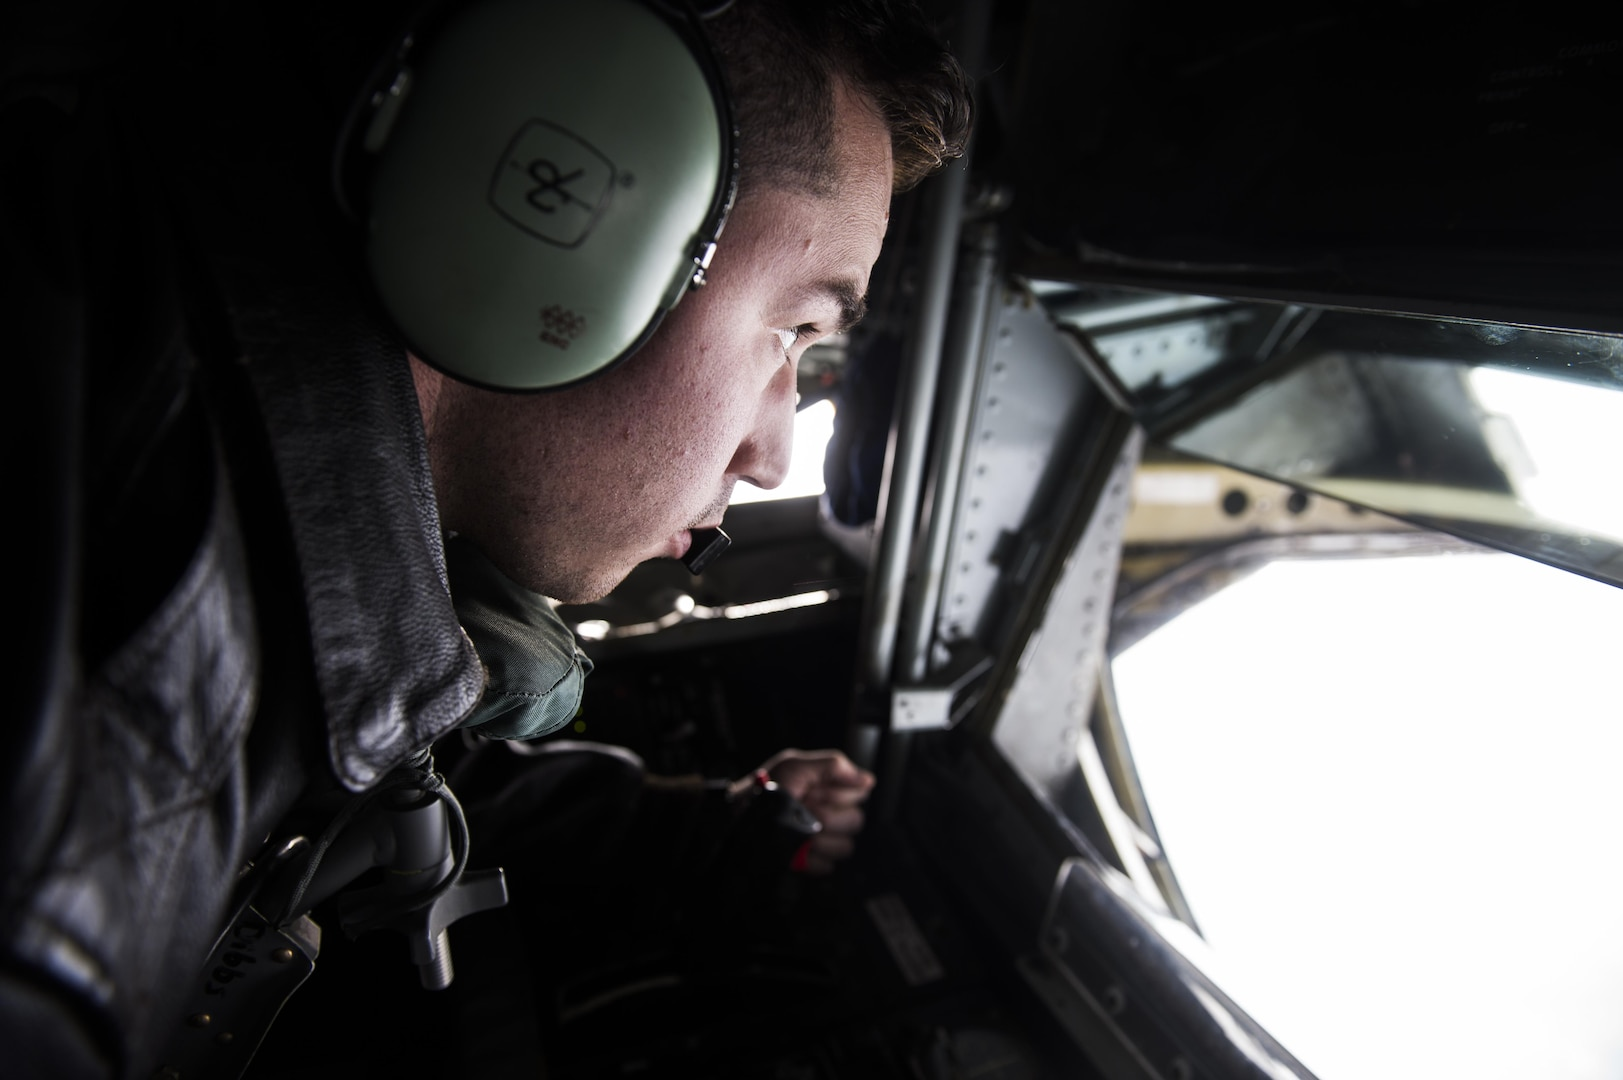 Staff Sgt. Nick Eykamp, boom operator, 92nd Aerial Refueling Squadron, Fairchild Air Force Base, Wa., waits to begin refueling aircraft in a the boom pod of a KC-135 stratotanker after takeoff in support of Vigilant Shield 2017 Field Training Exercise 17 Oct., 2016,at Joint Base Elmendorf-Richardson, Alaska.